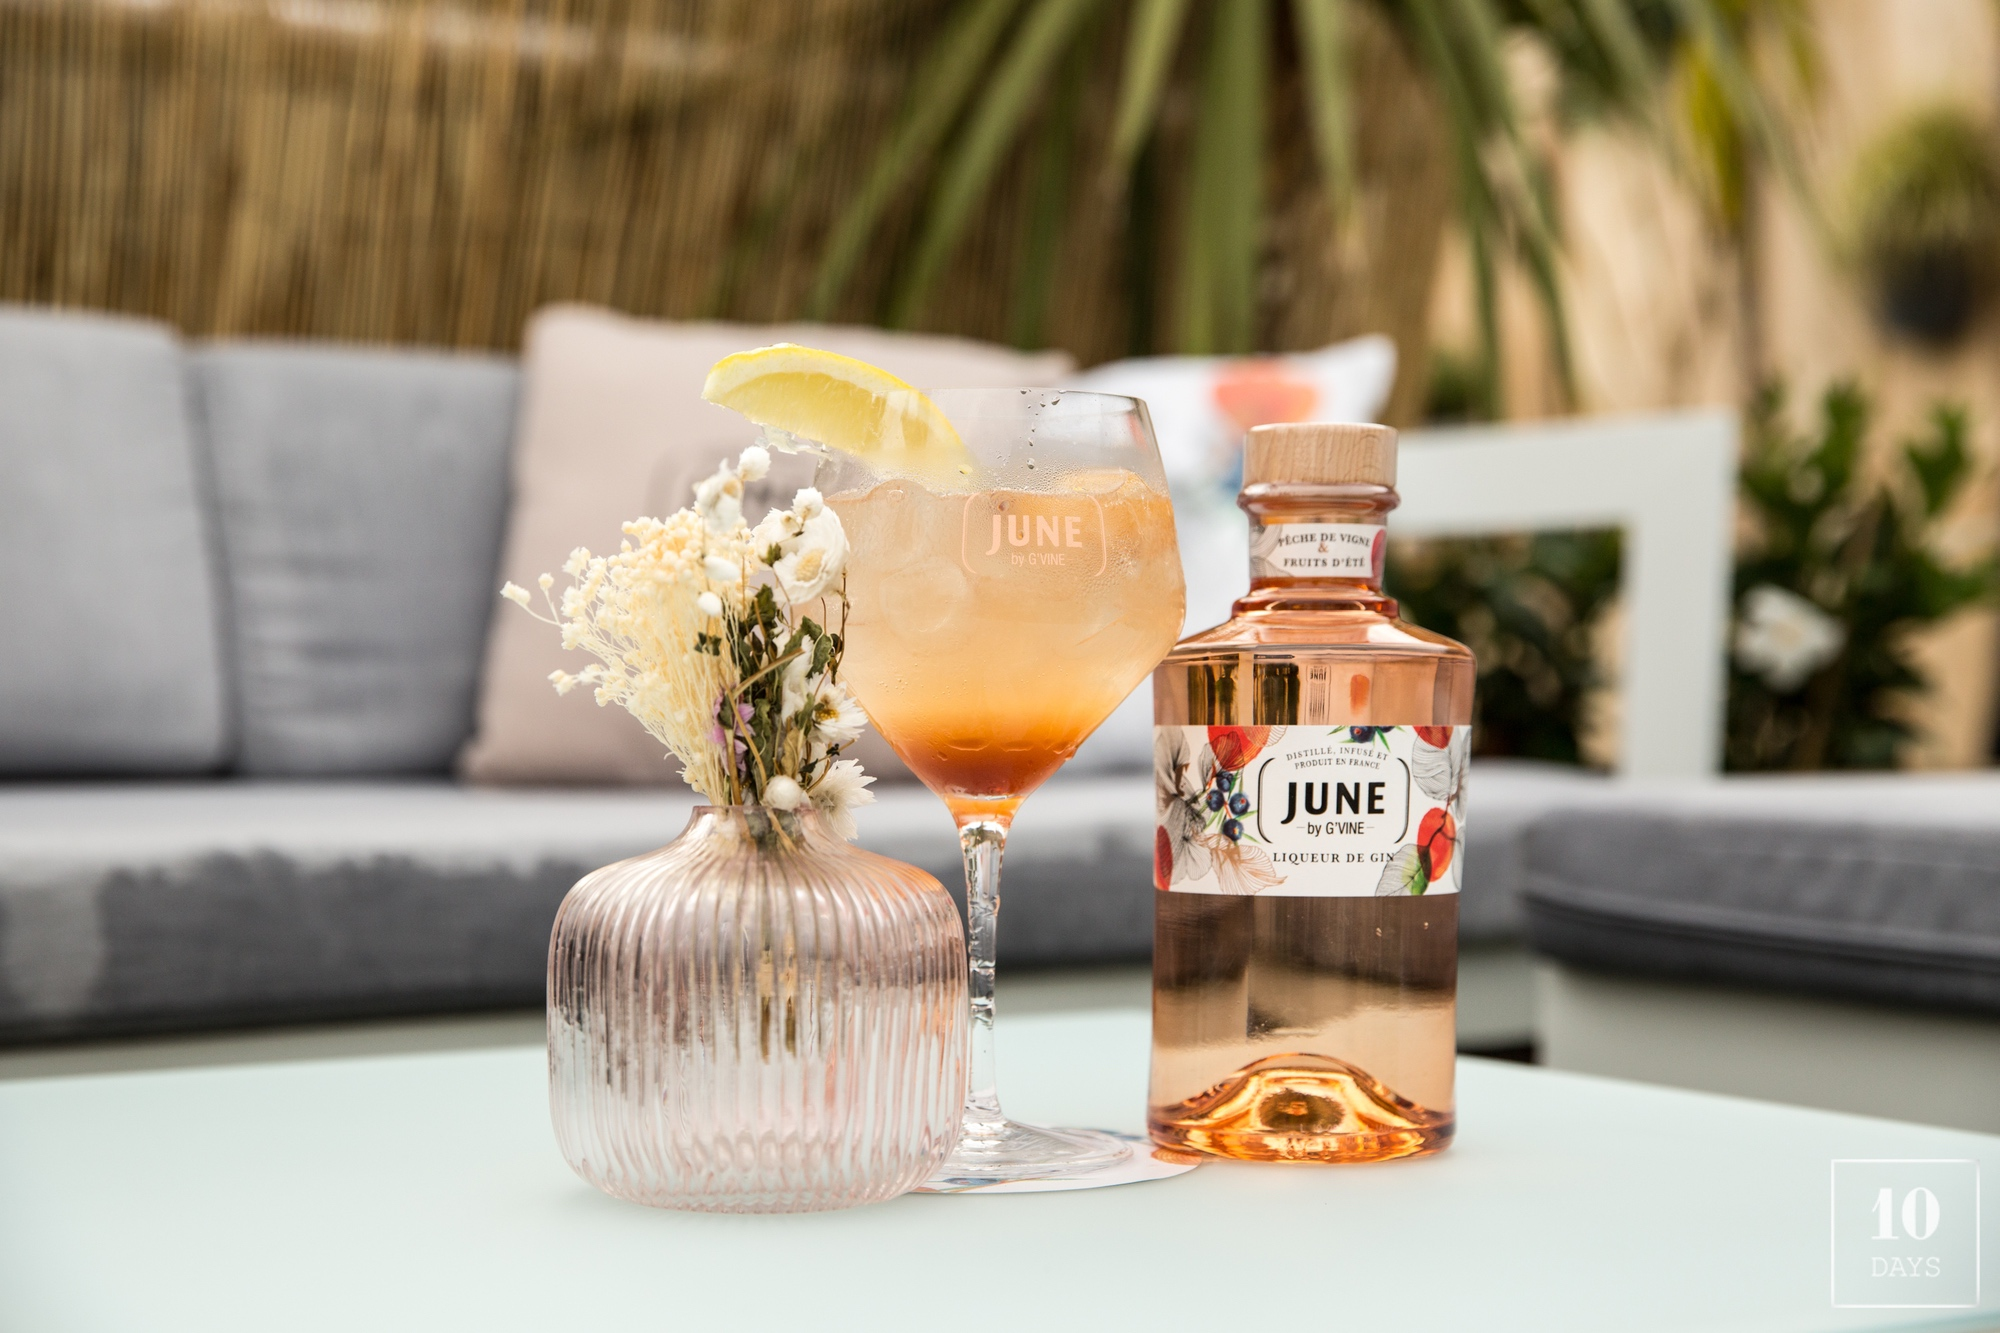 JUNE by G'Vine Launching Cocktail Party